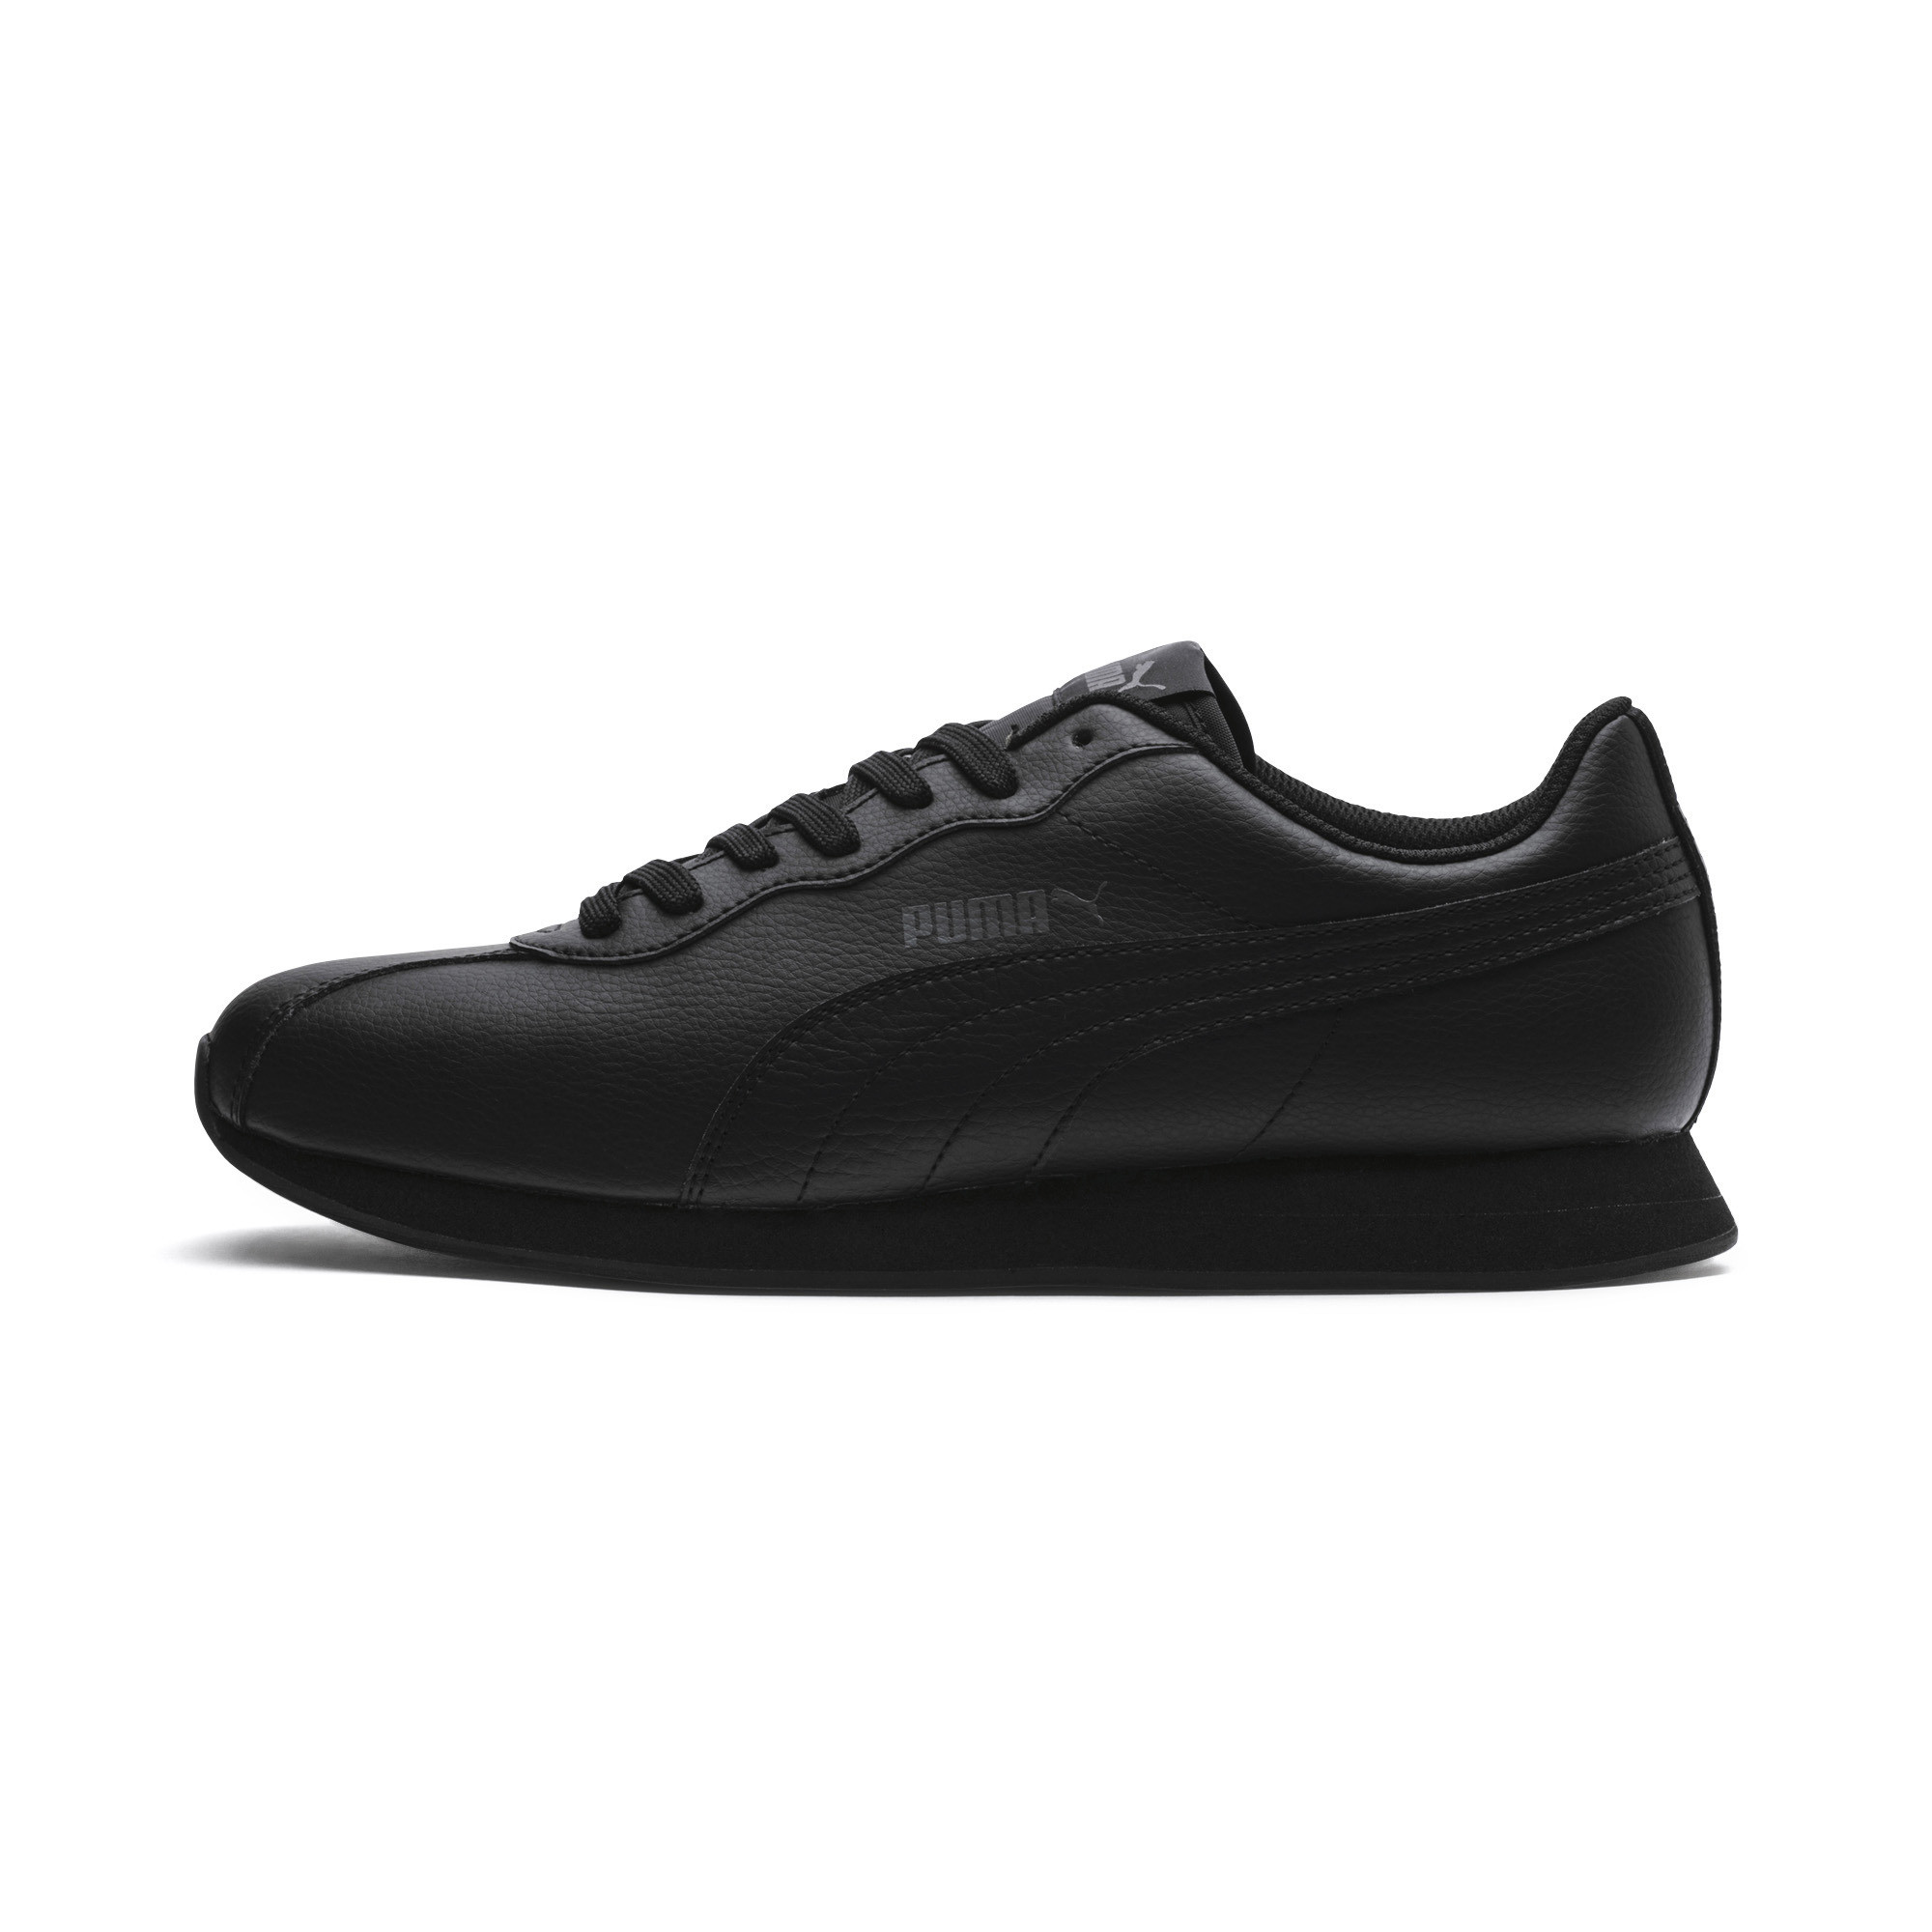 PUMA-Turin-II-Men-039-s-Sneakers-Men-Shoe-Basics thumbnail 4